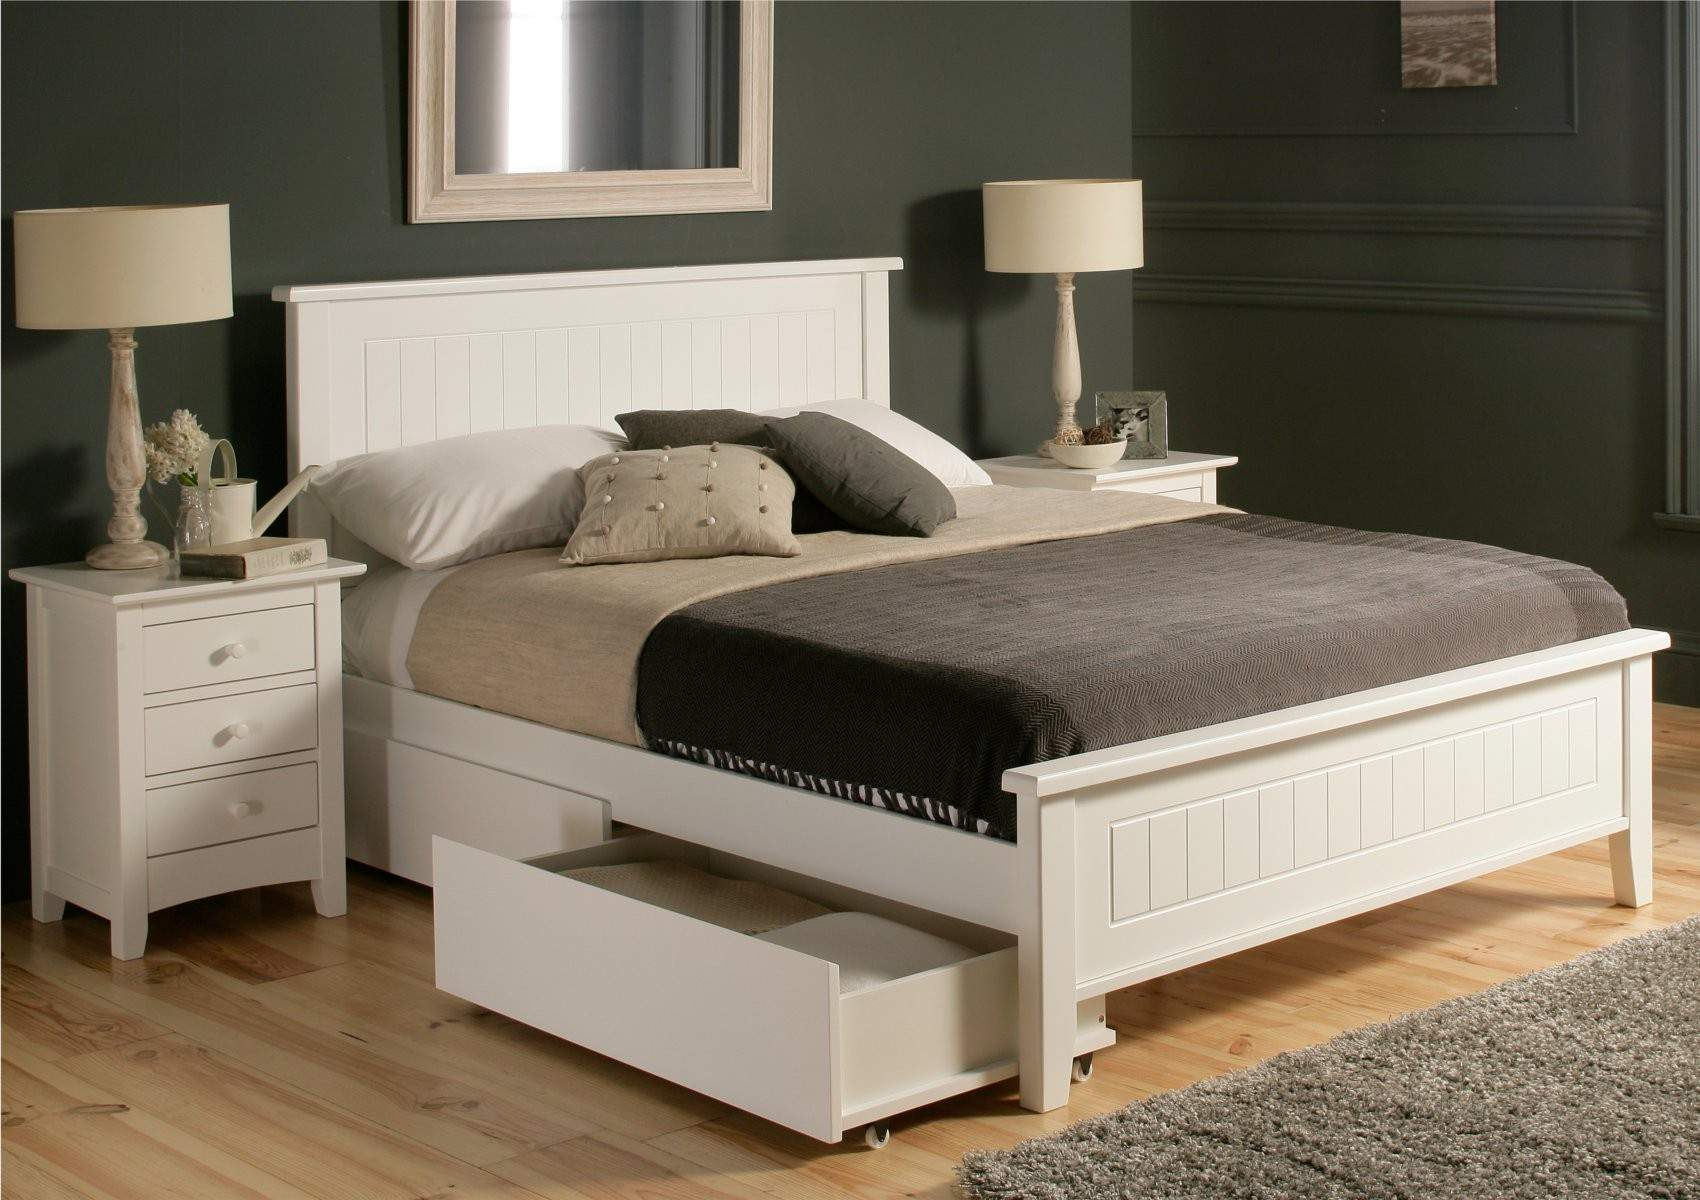 beds with drawers underneath homesfeed. Black Bedroom Furniture Sets. Home Design Ideas